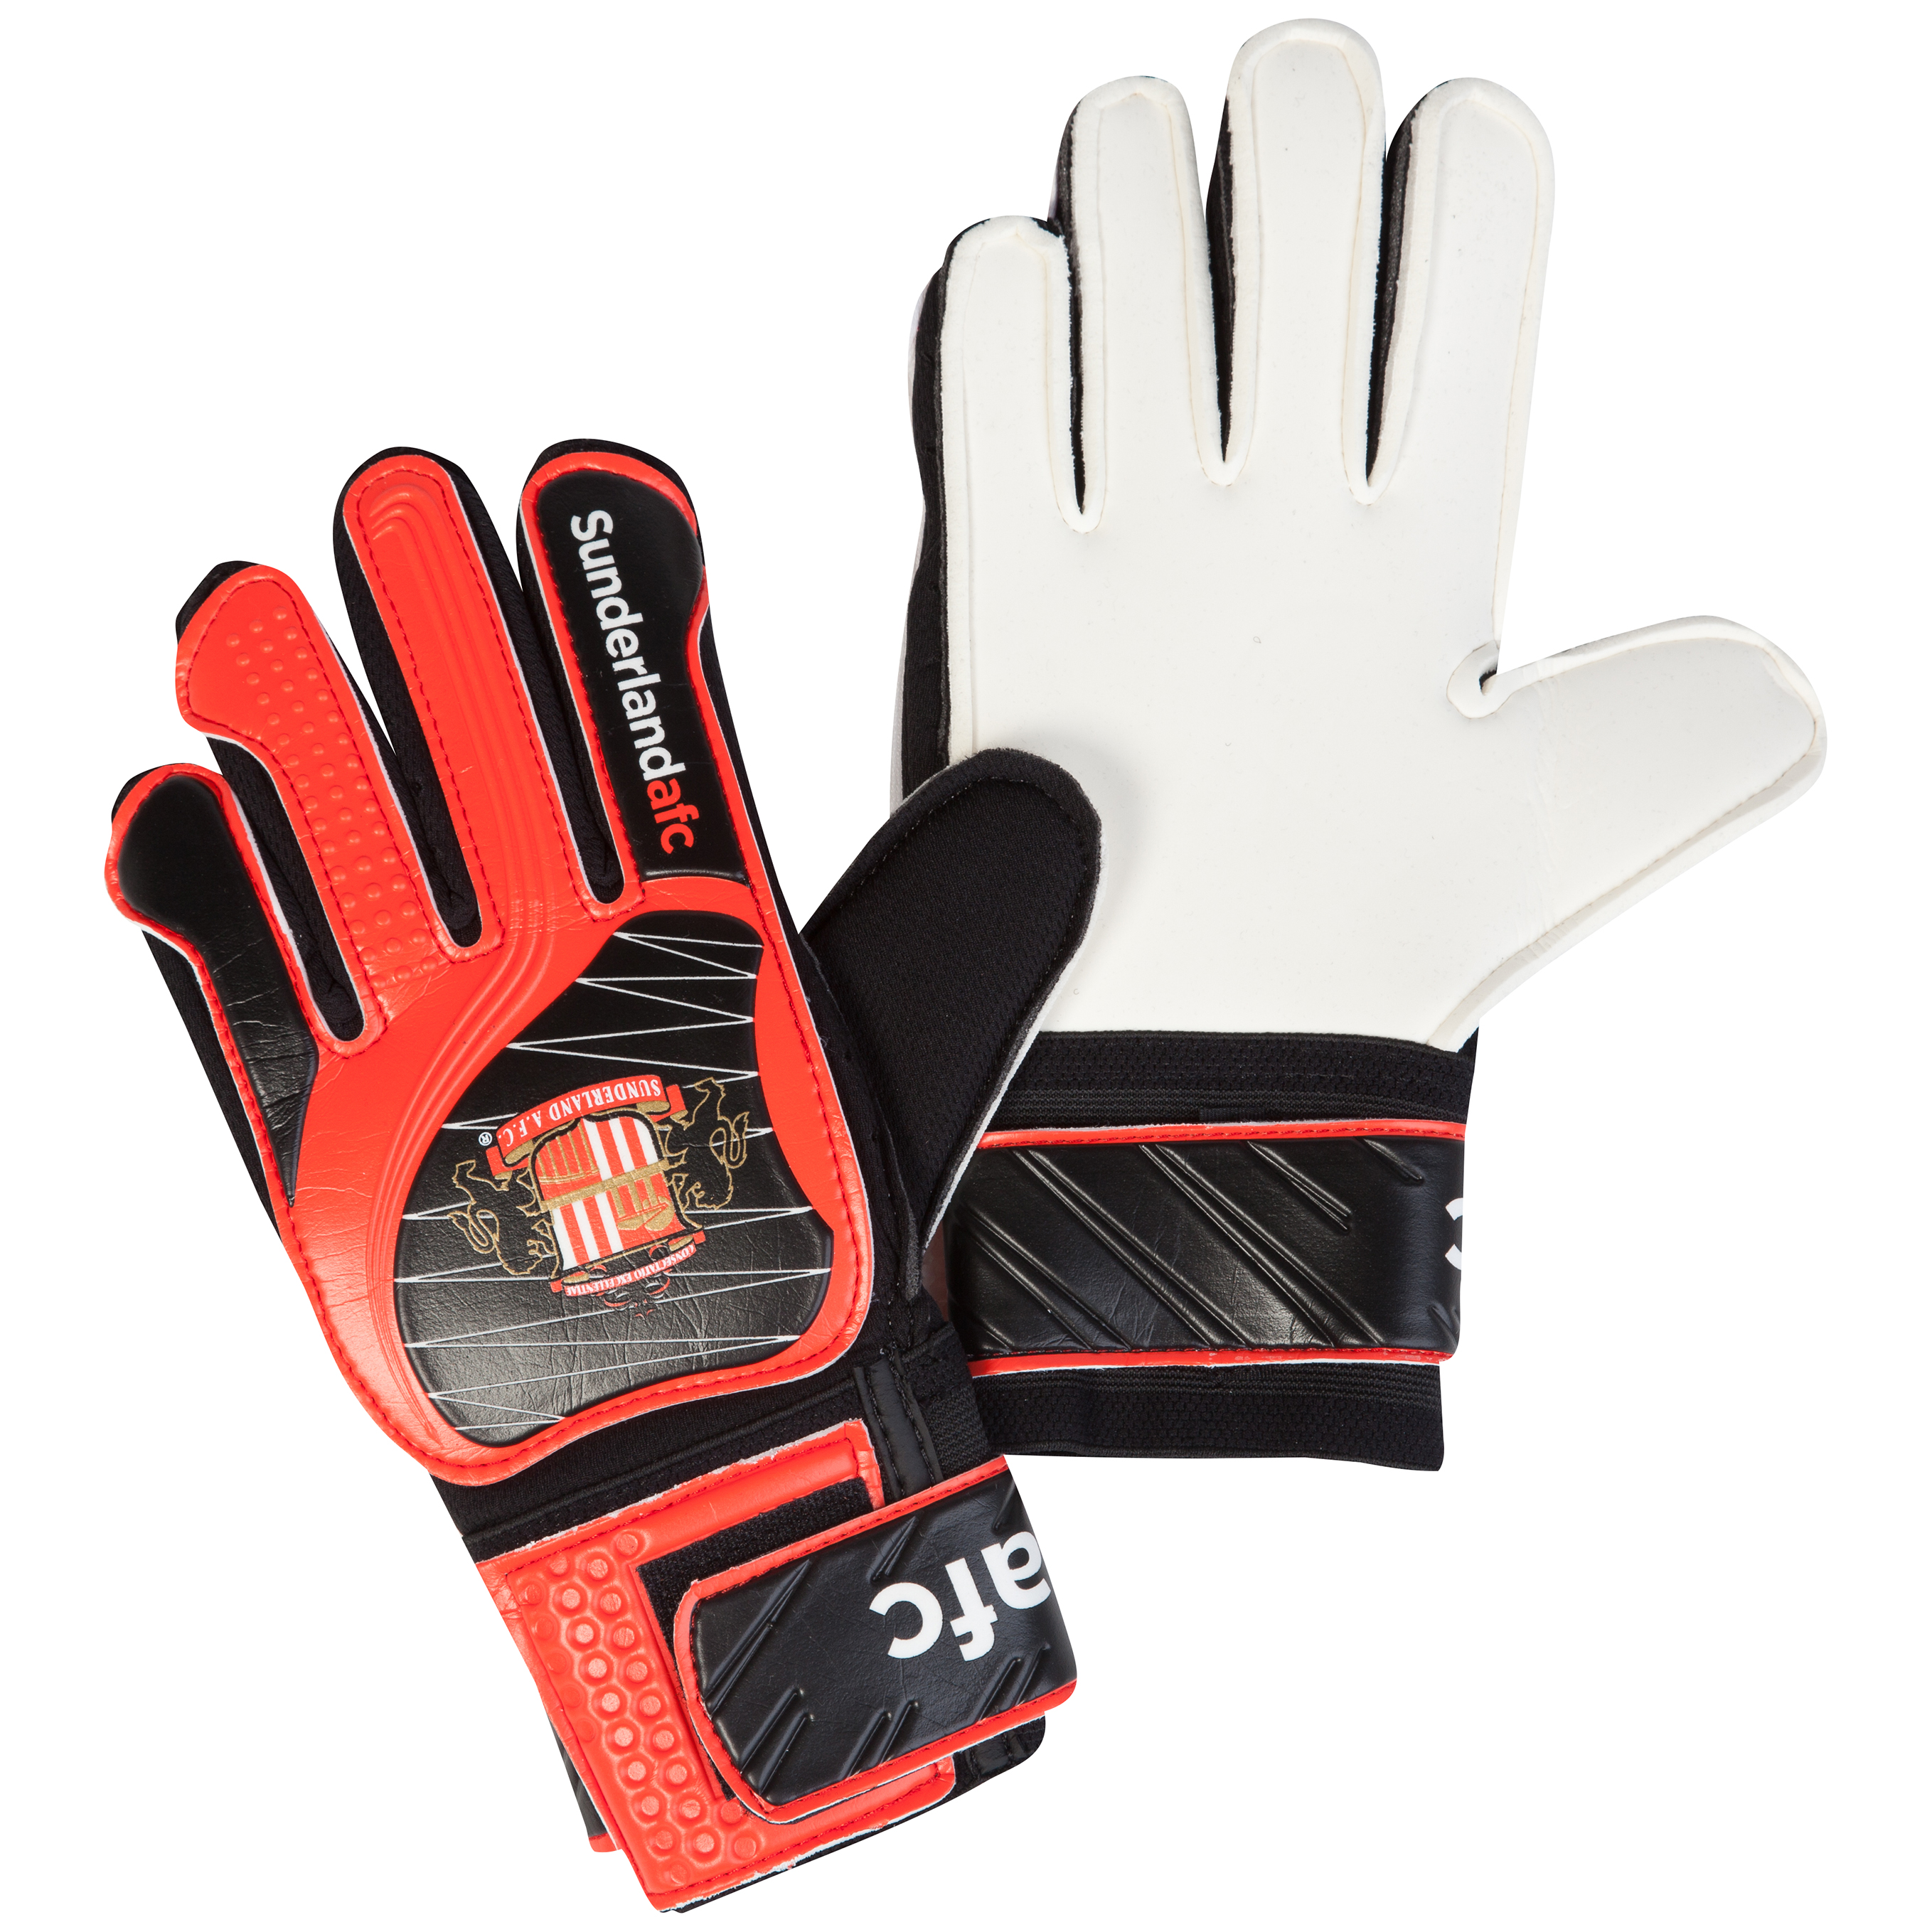 Sunderland Youths Goalie Gloves